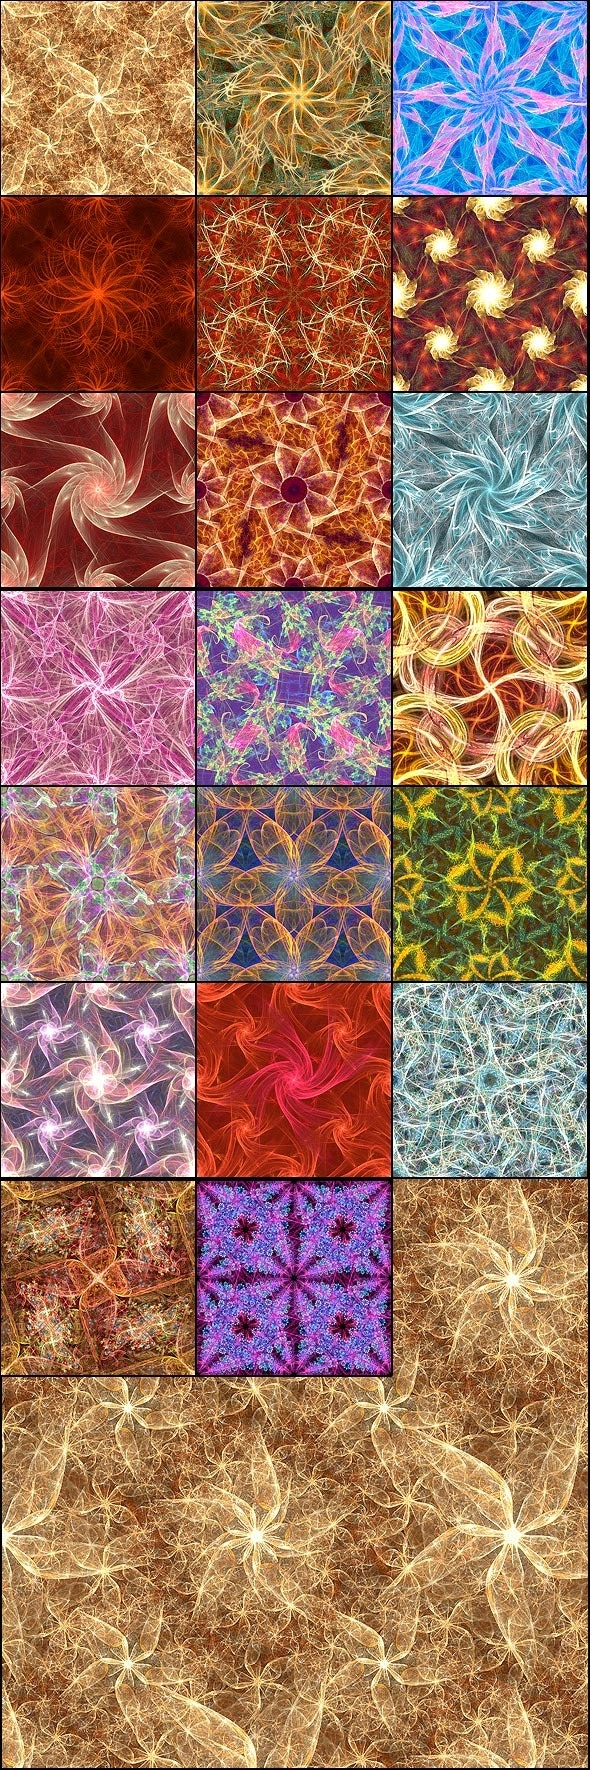 Flame Fabrics - Abstract Textures / Fills / Patterns